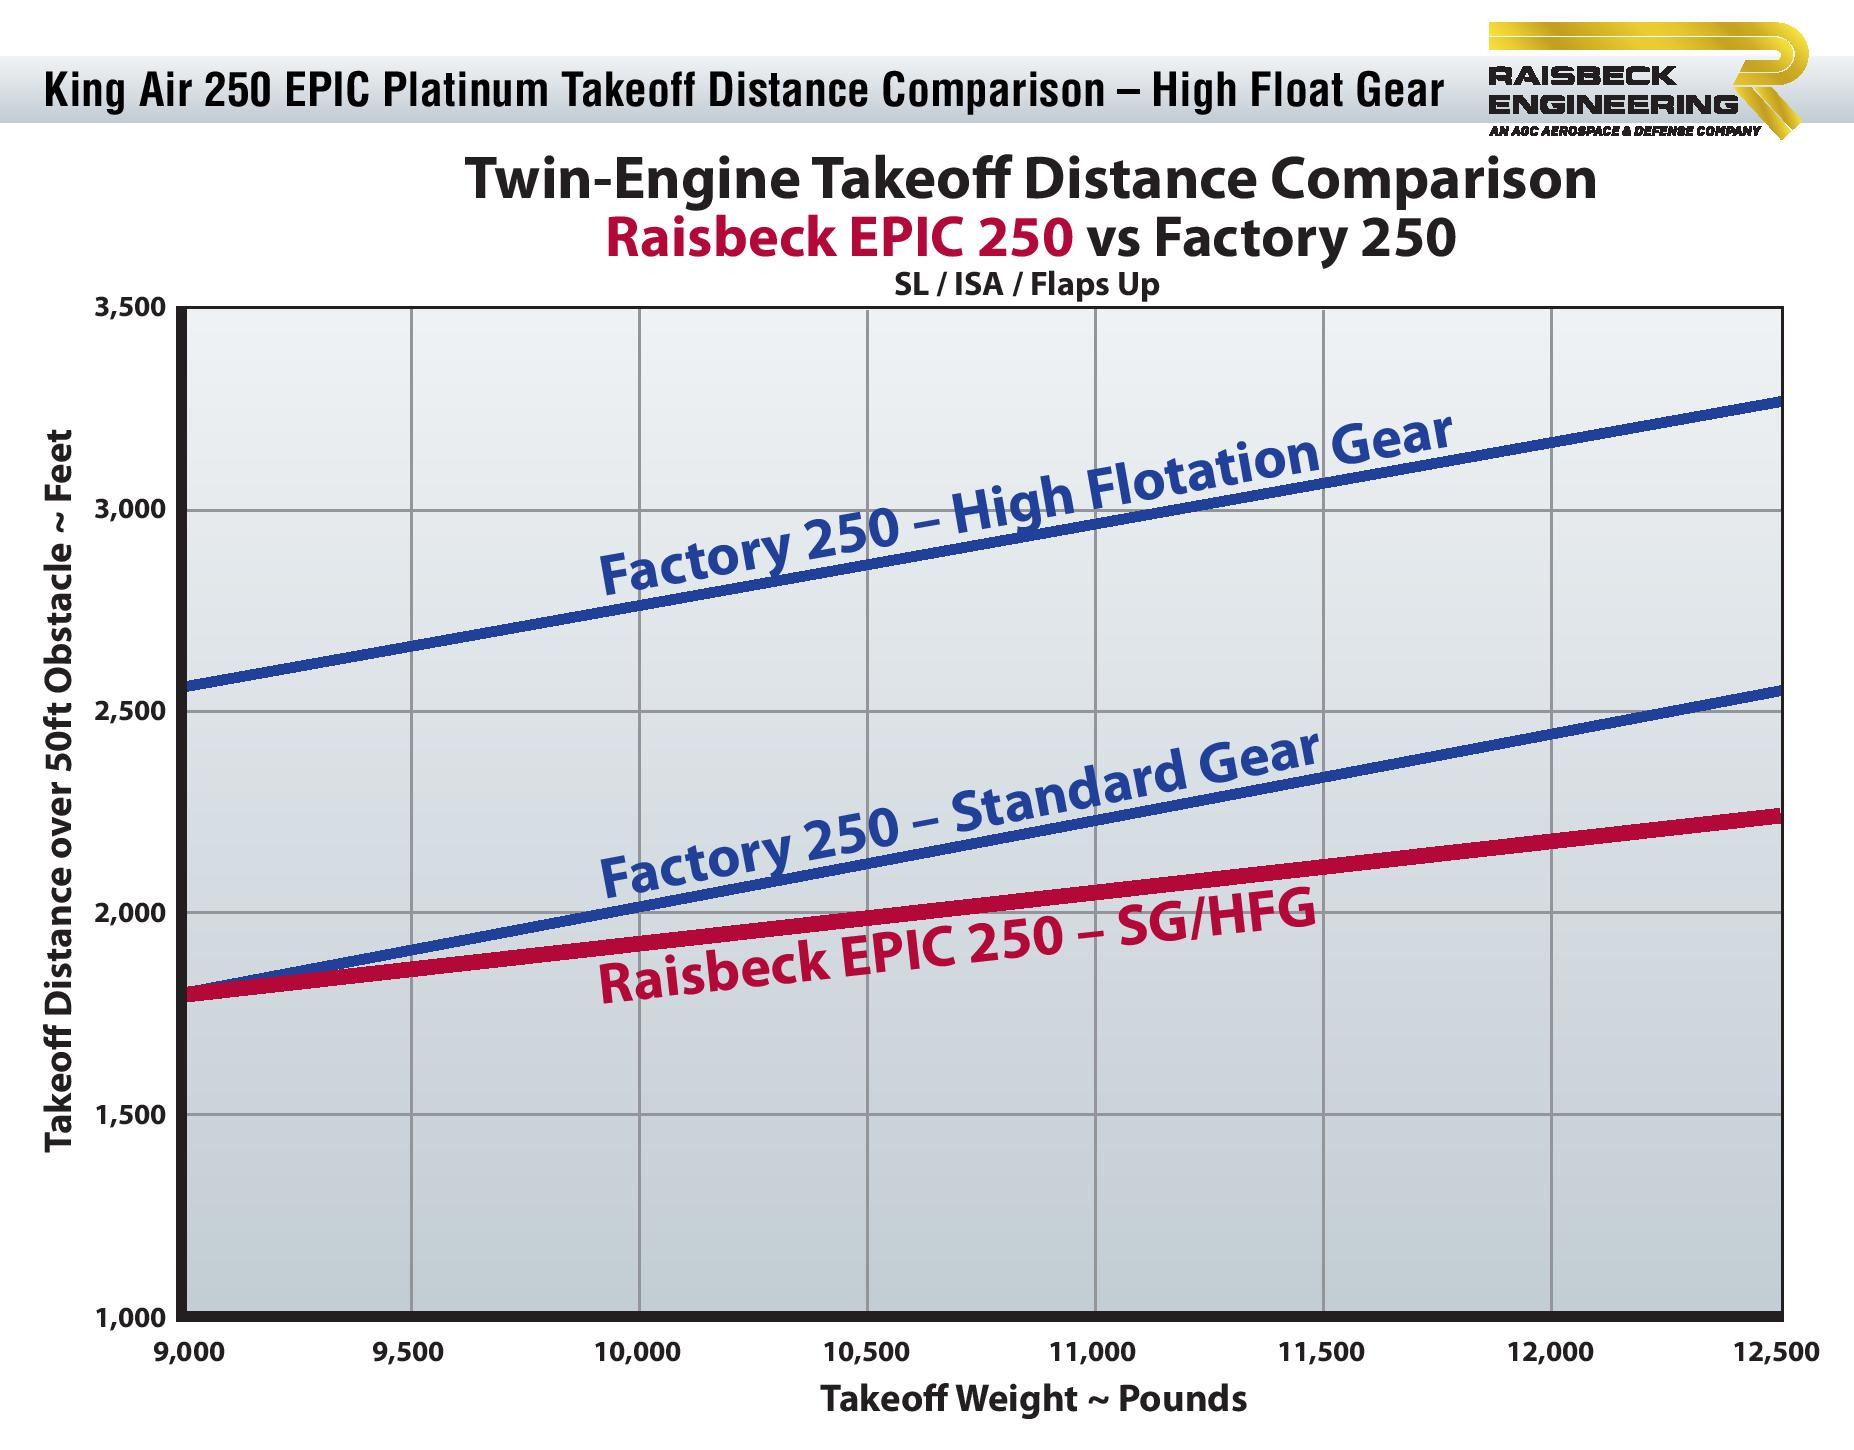 250 EPIC Platinum Takeoff Distance Graph